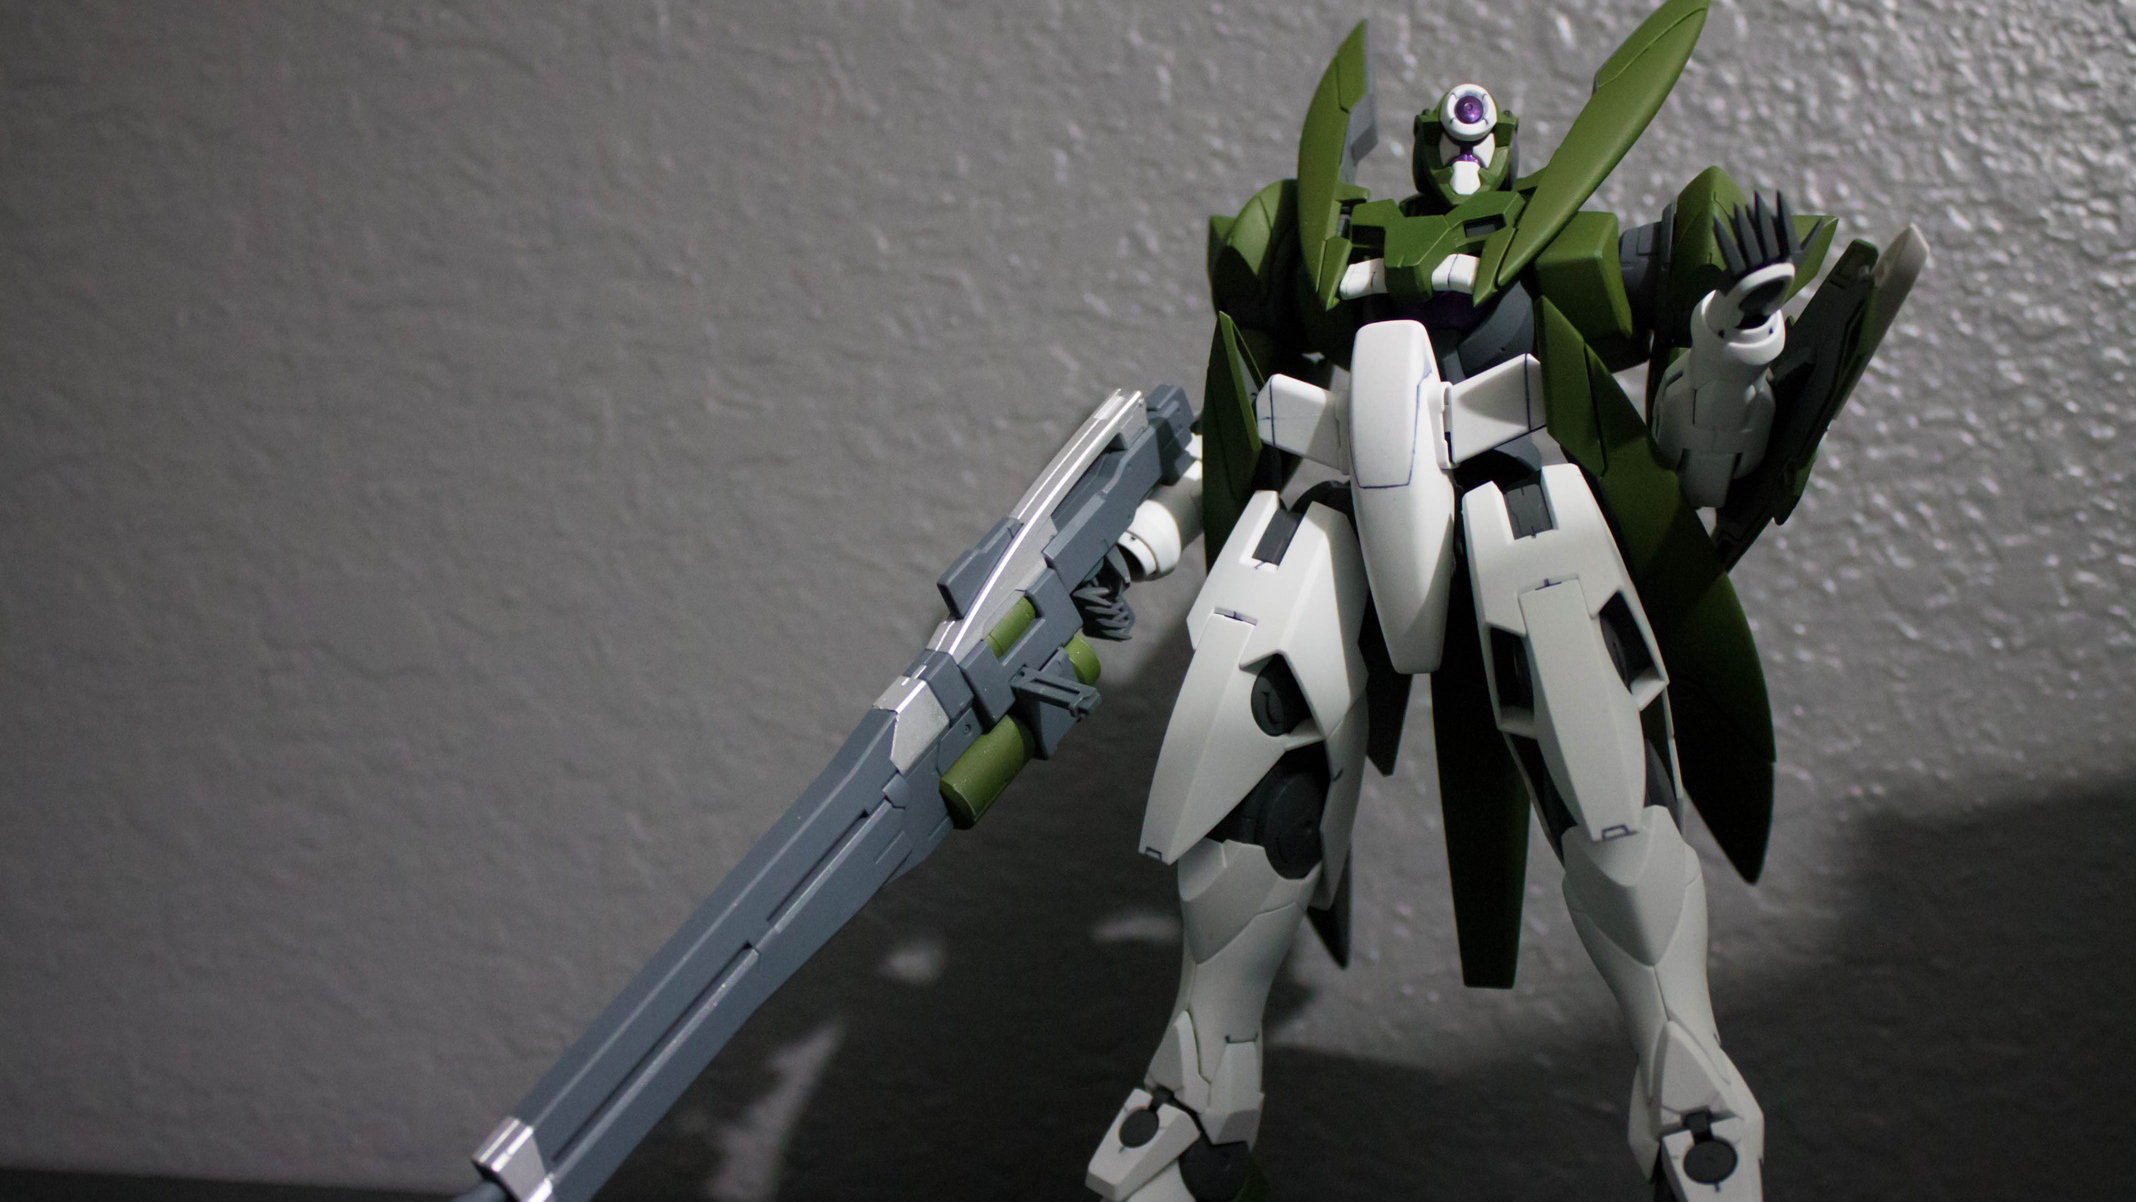 How To Paint Gunpla With Spray Paint